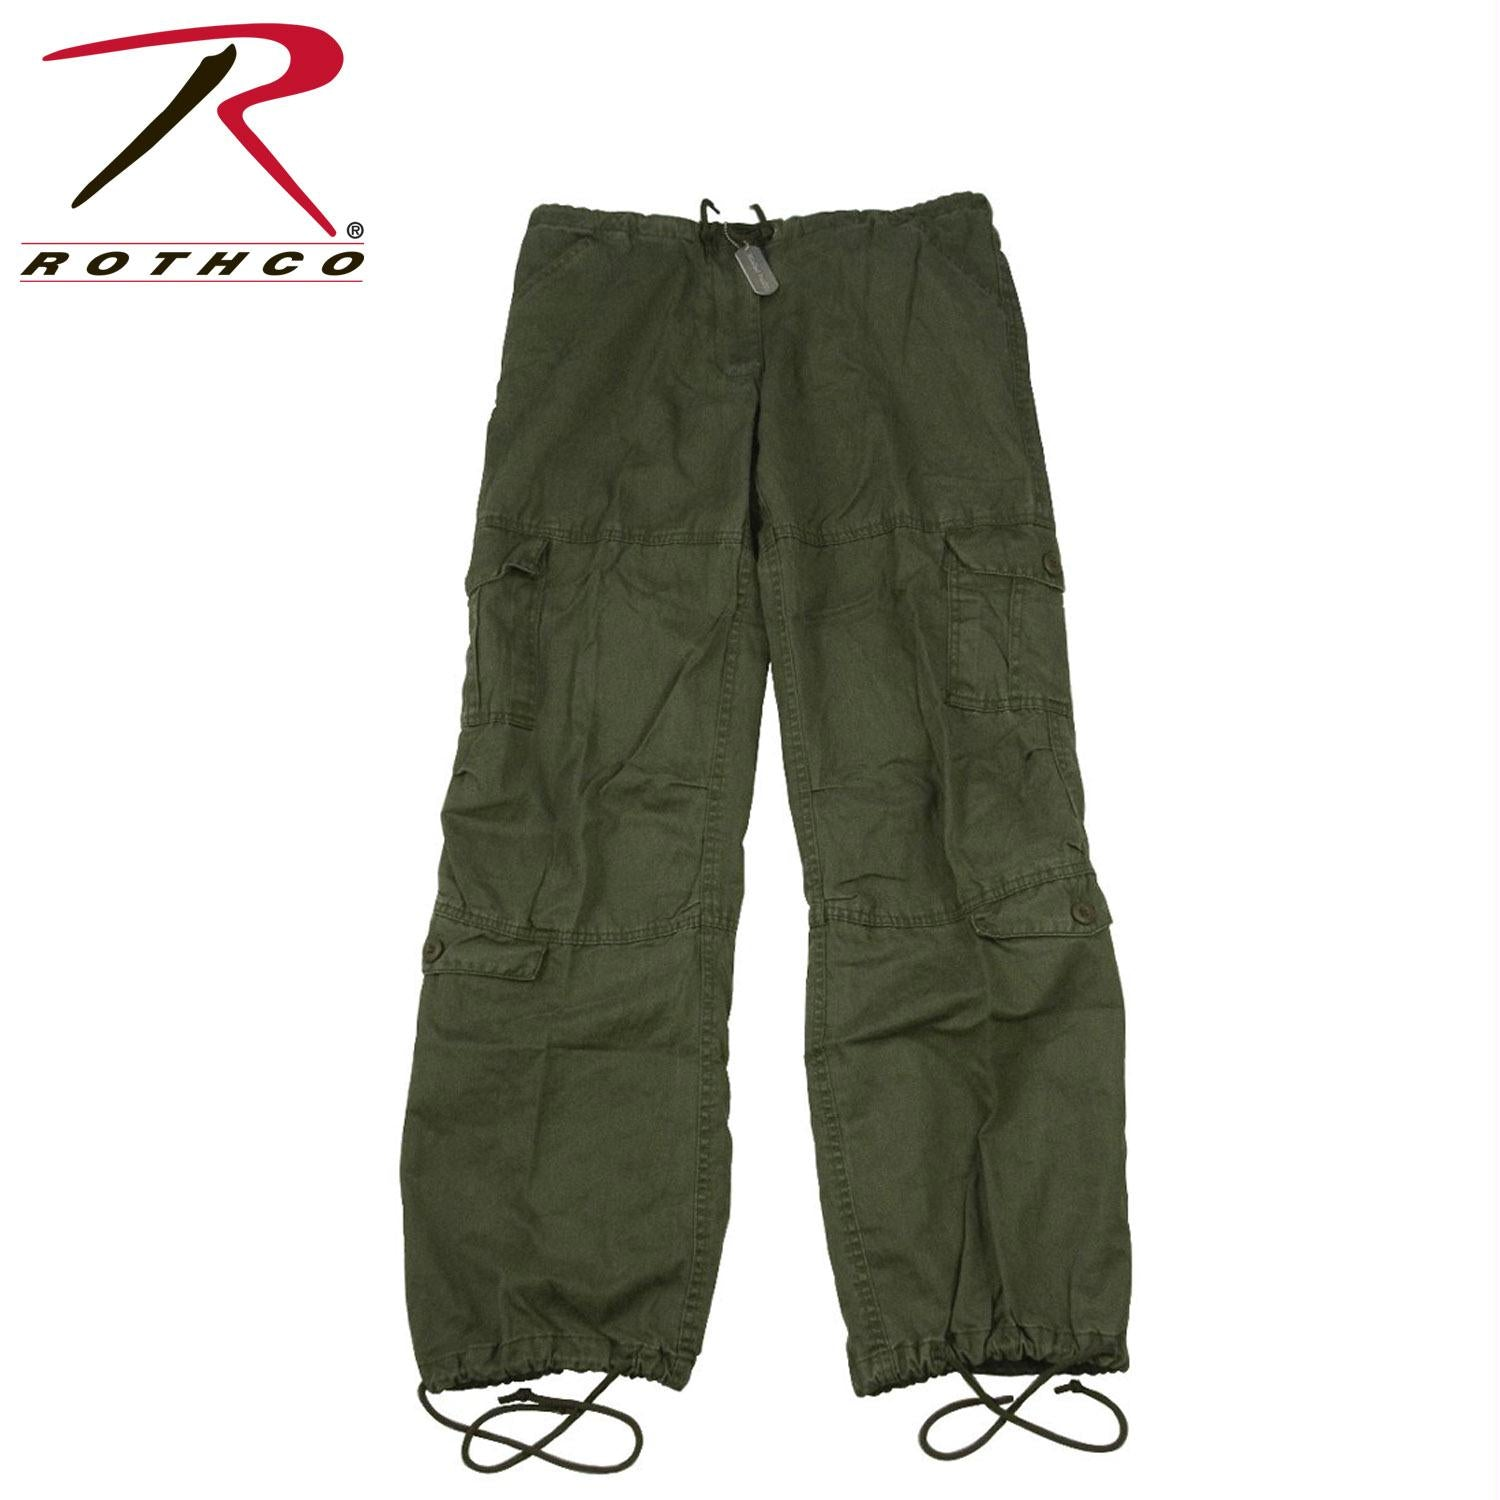 Rothco Women's Vintage Paratrooper Fatigue Pants - Olive Drab / L